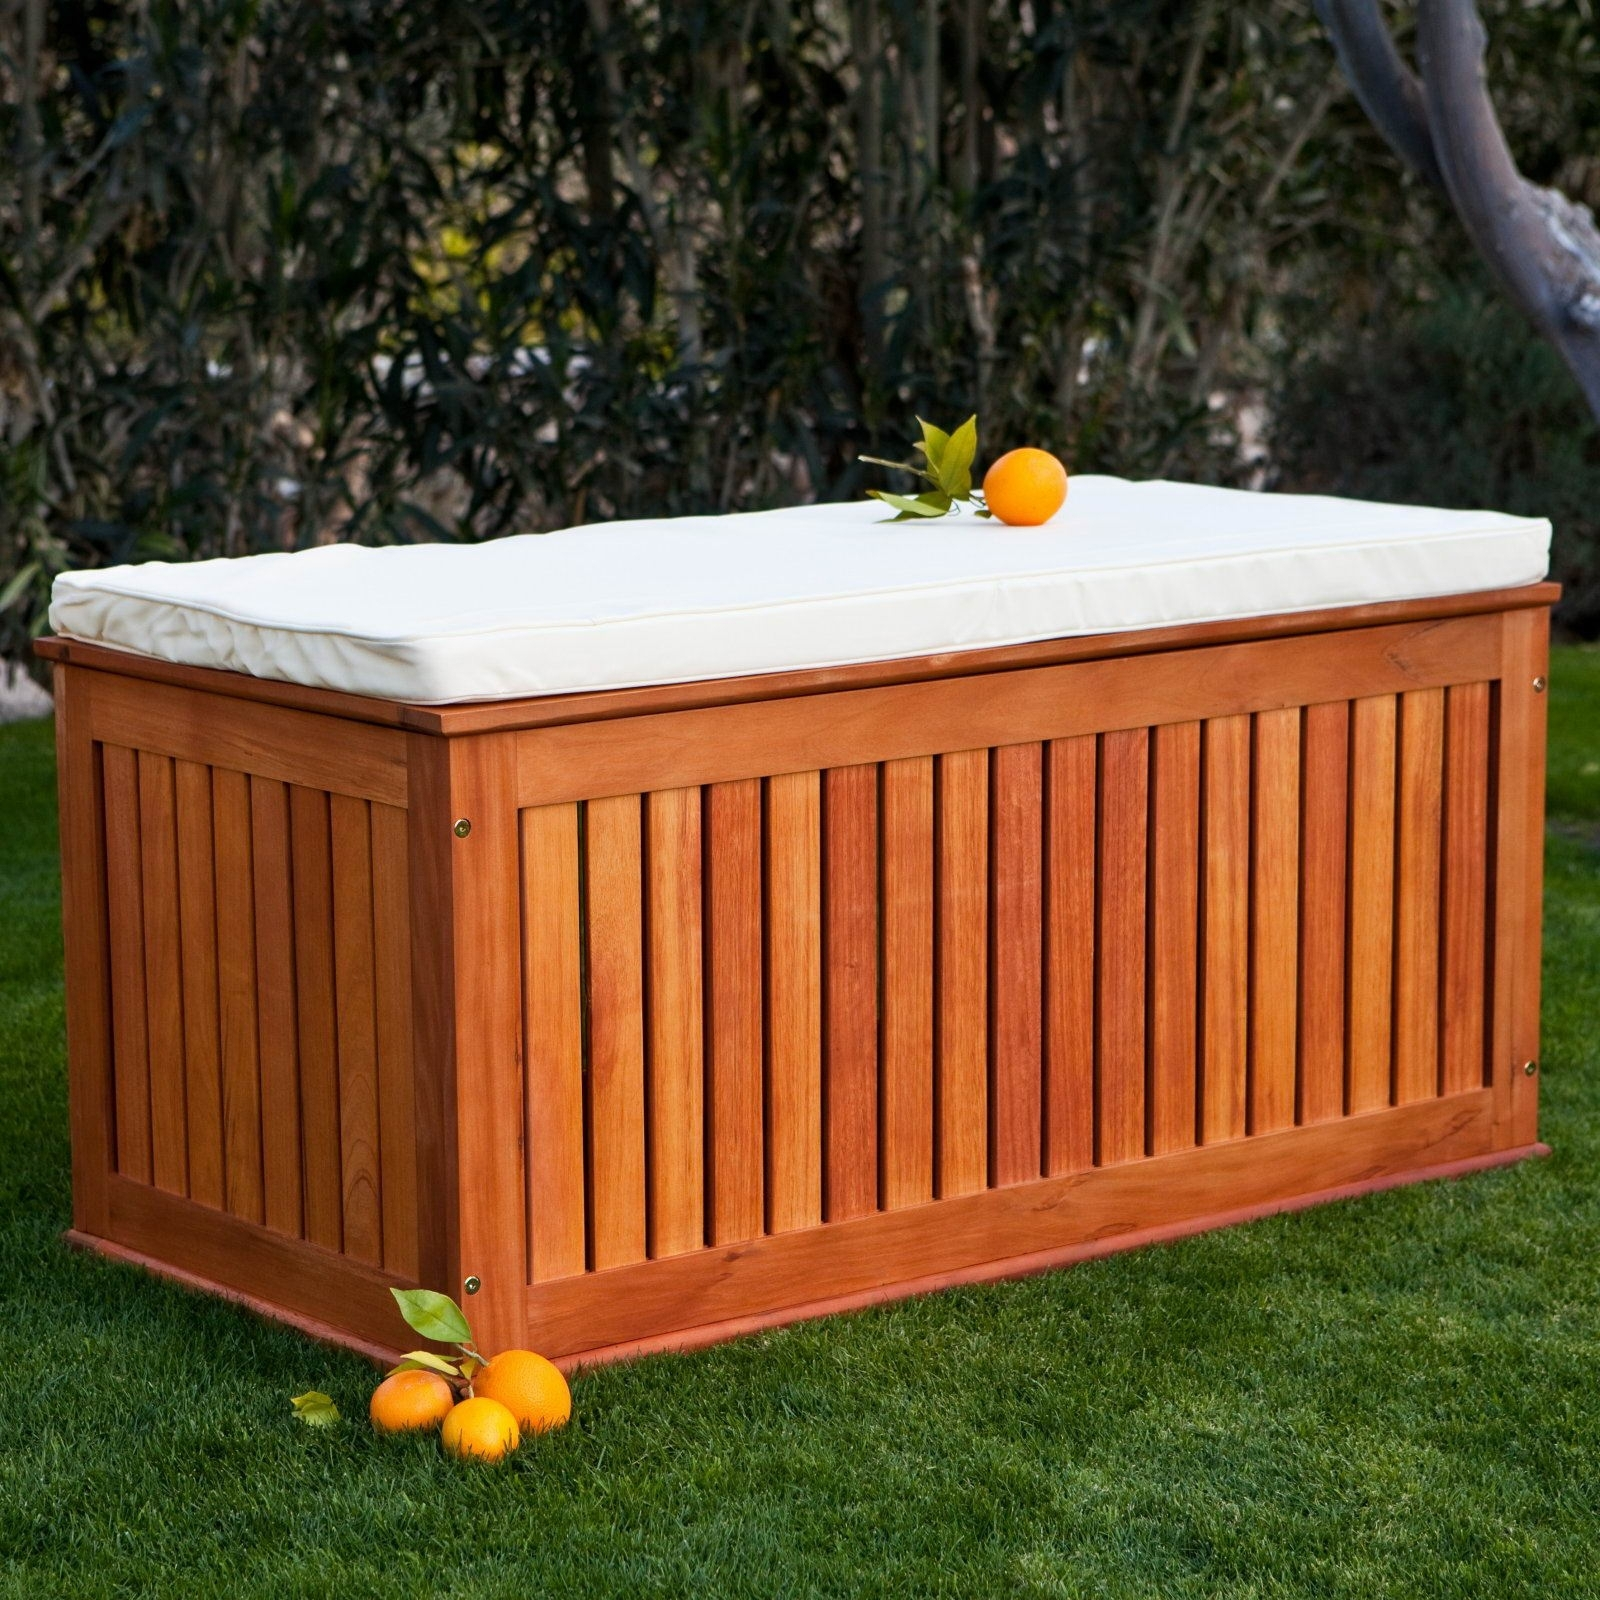 Image of: Storage Brilliant 11 Outdoor Storage Benches Waterproof Photos In Waterproof Outdoor Cushion Storage Box Waterproof Outdoor Cushion Storage Box Idea